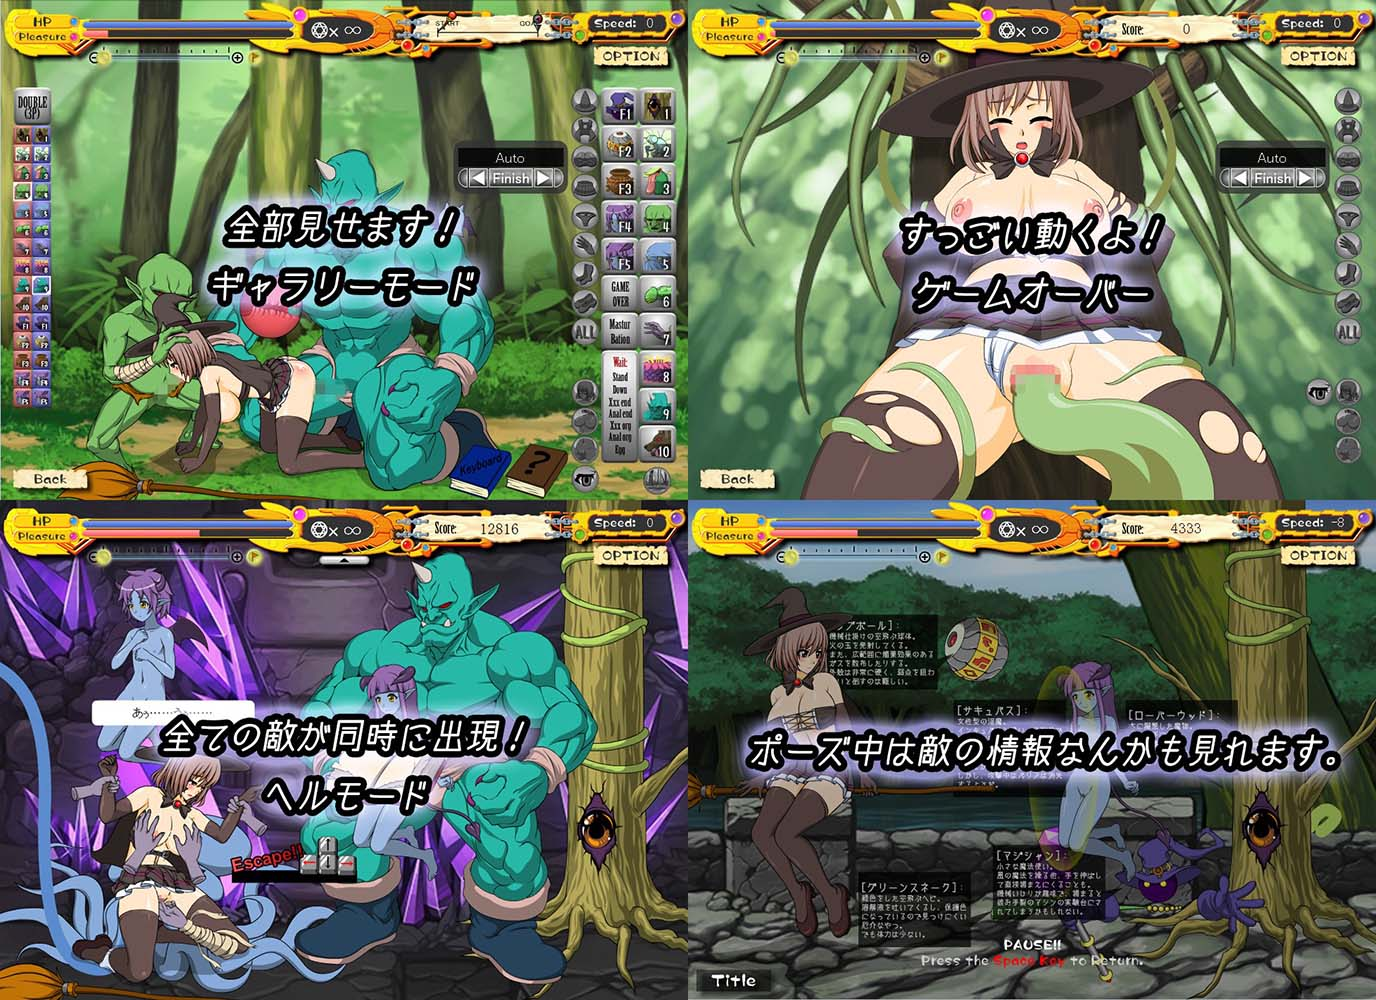 WITCH GIRL -EROTIC SIDE SCROLLING ACTION GAME 2-のサンプル画像2